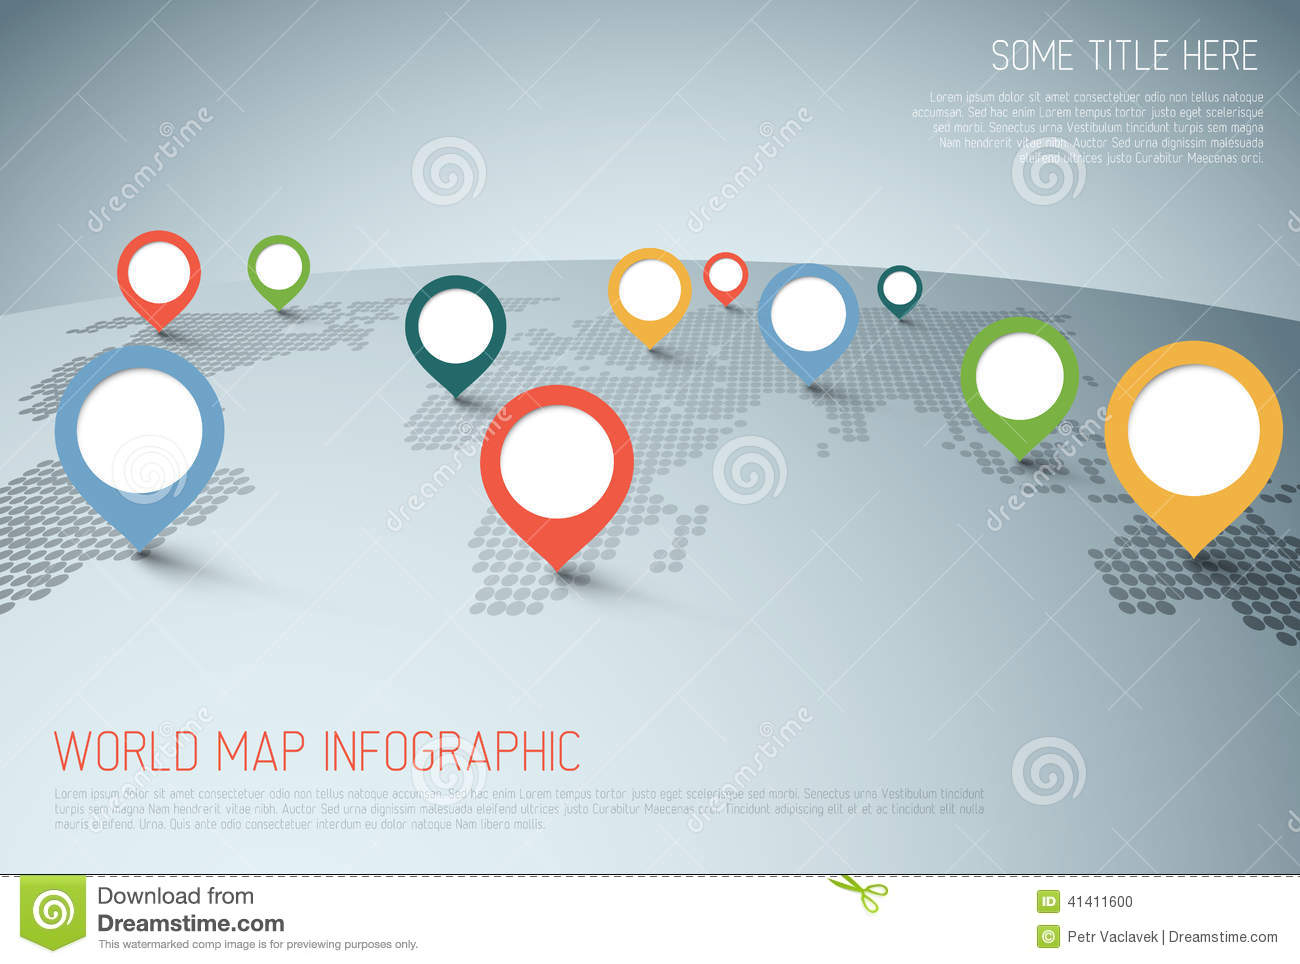 Free Google Maps Pointer Icon: Map Pointer Stock Illustration